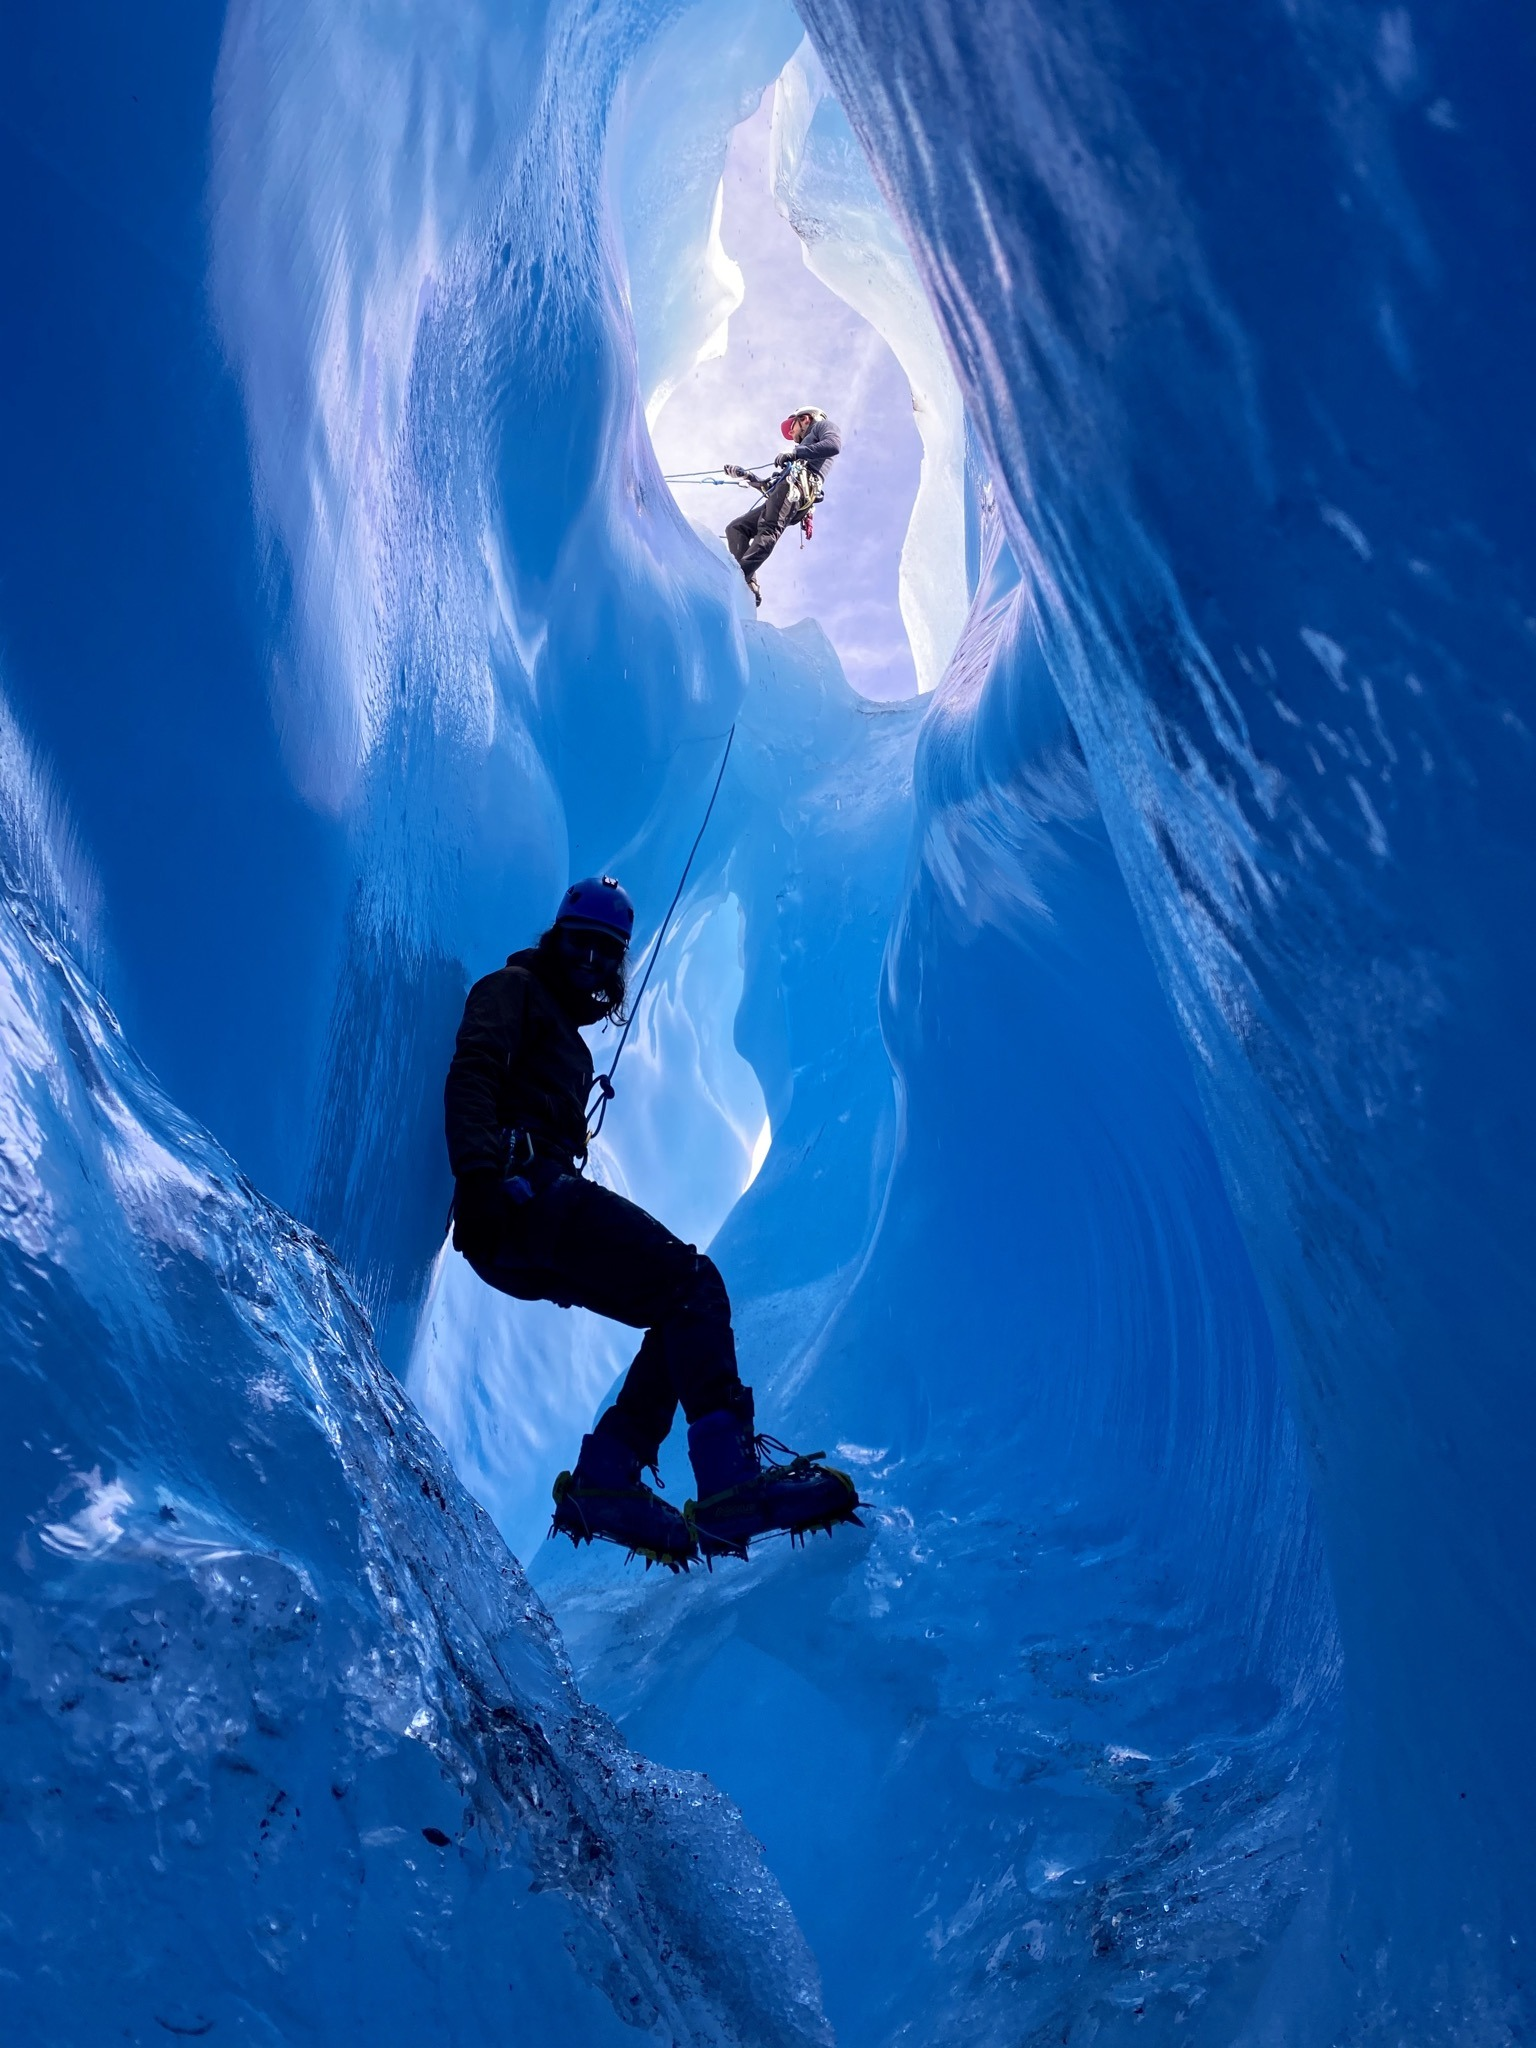 Two explorers descend into an icy glacier roped up and wearing crampons